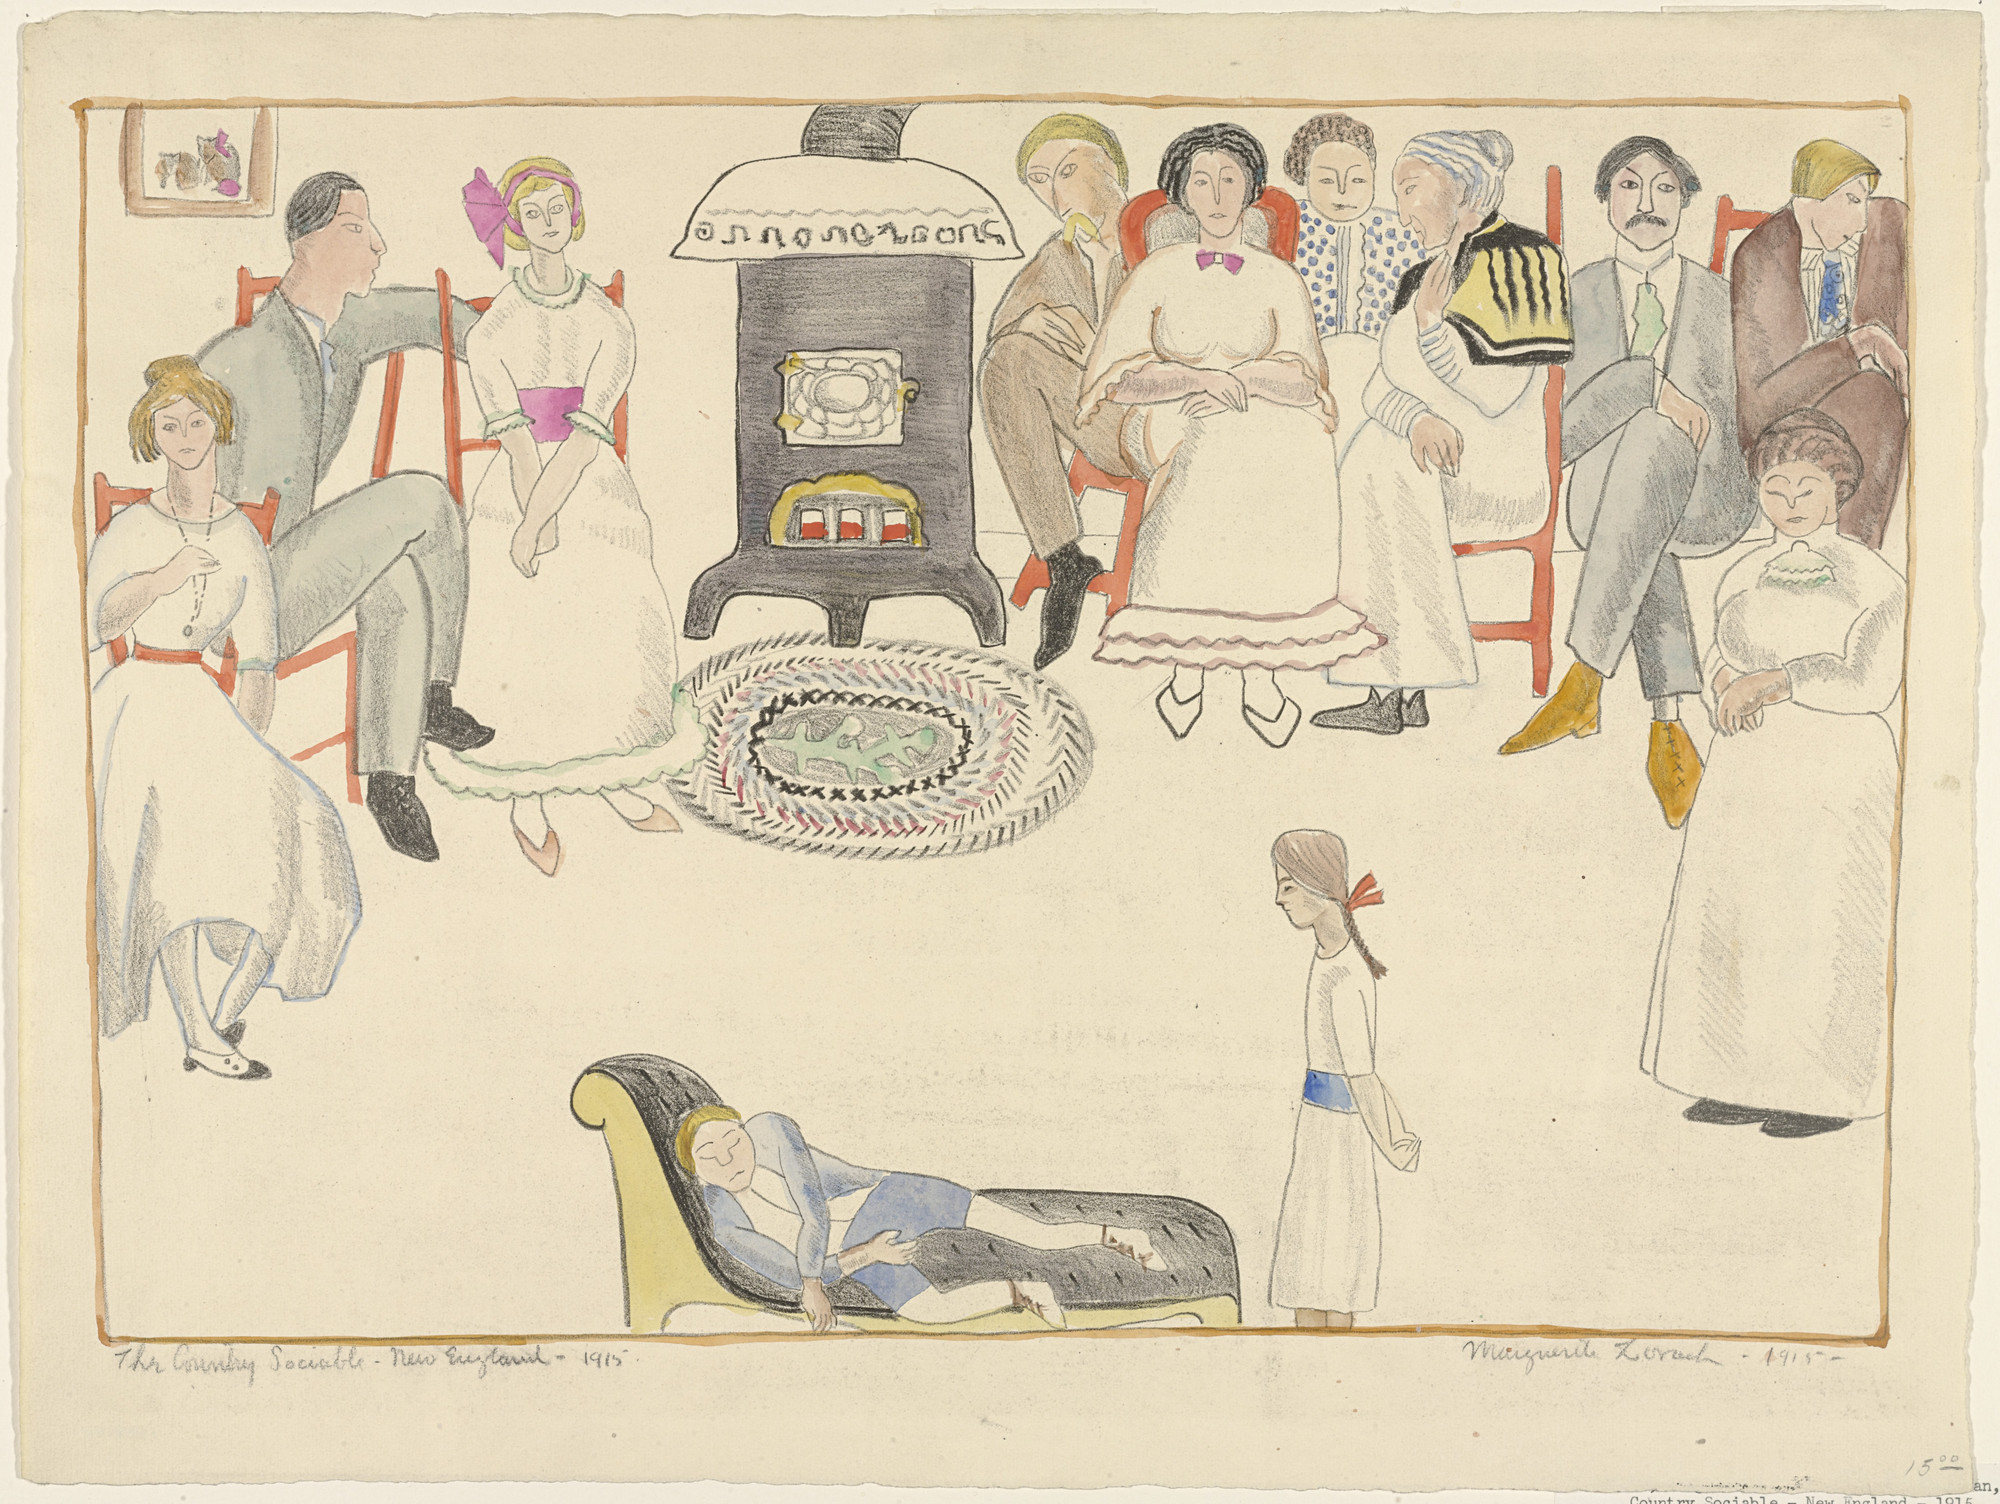 Marguerite Zorach. The Country Sociable - New England - 1915. 1915